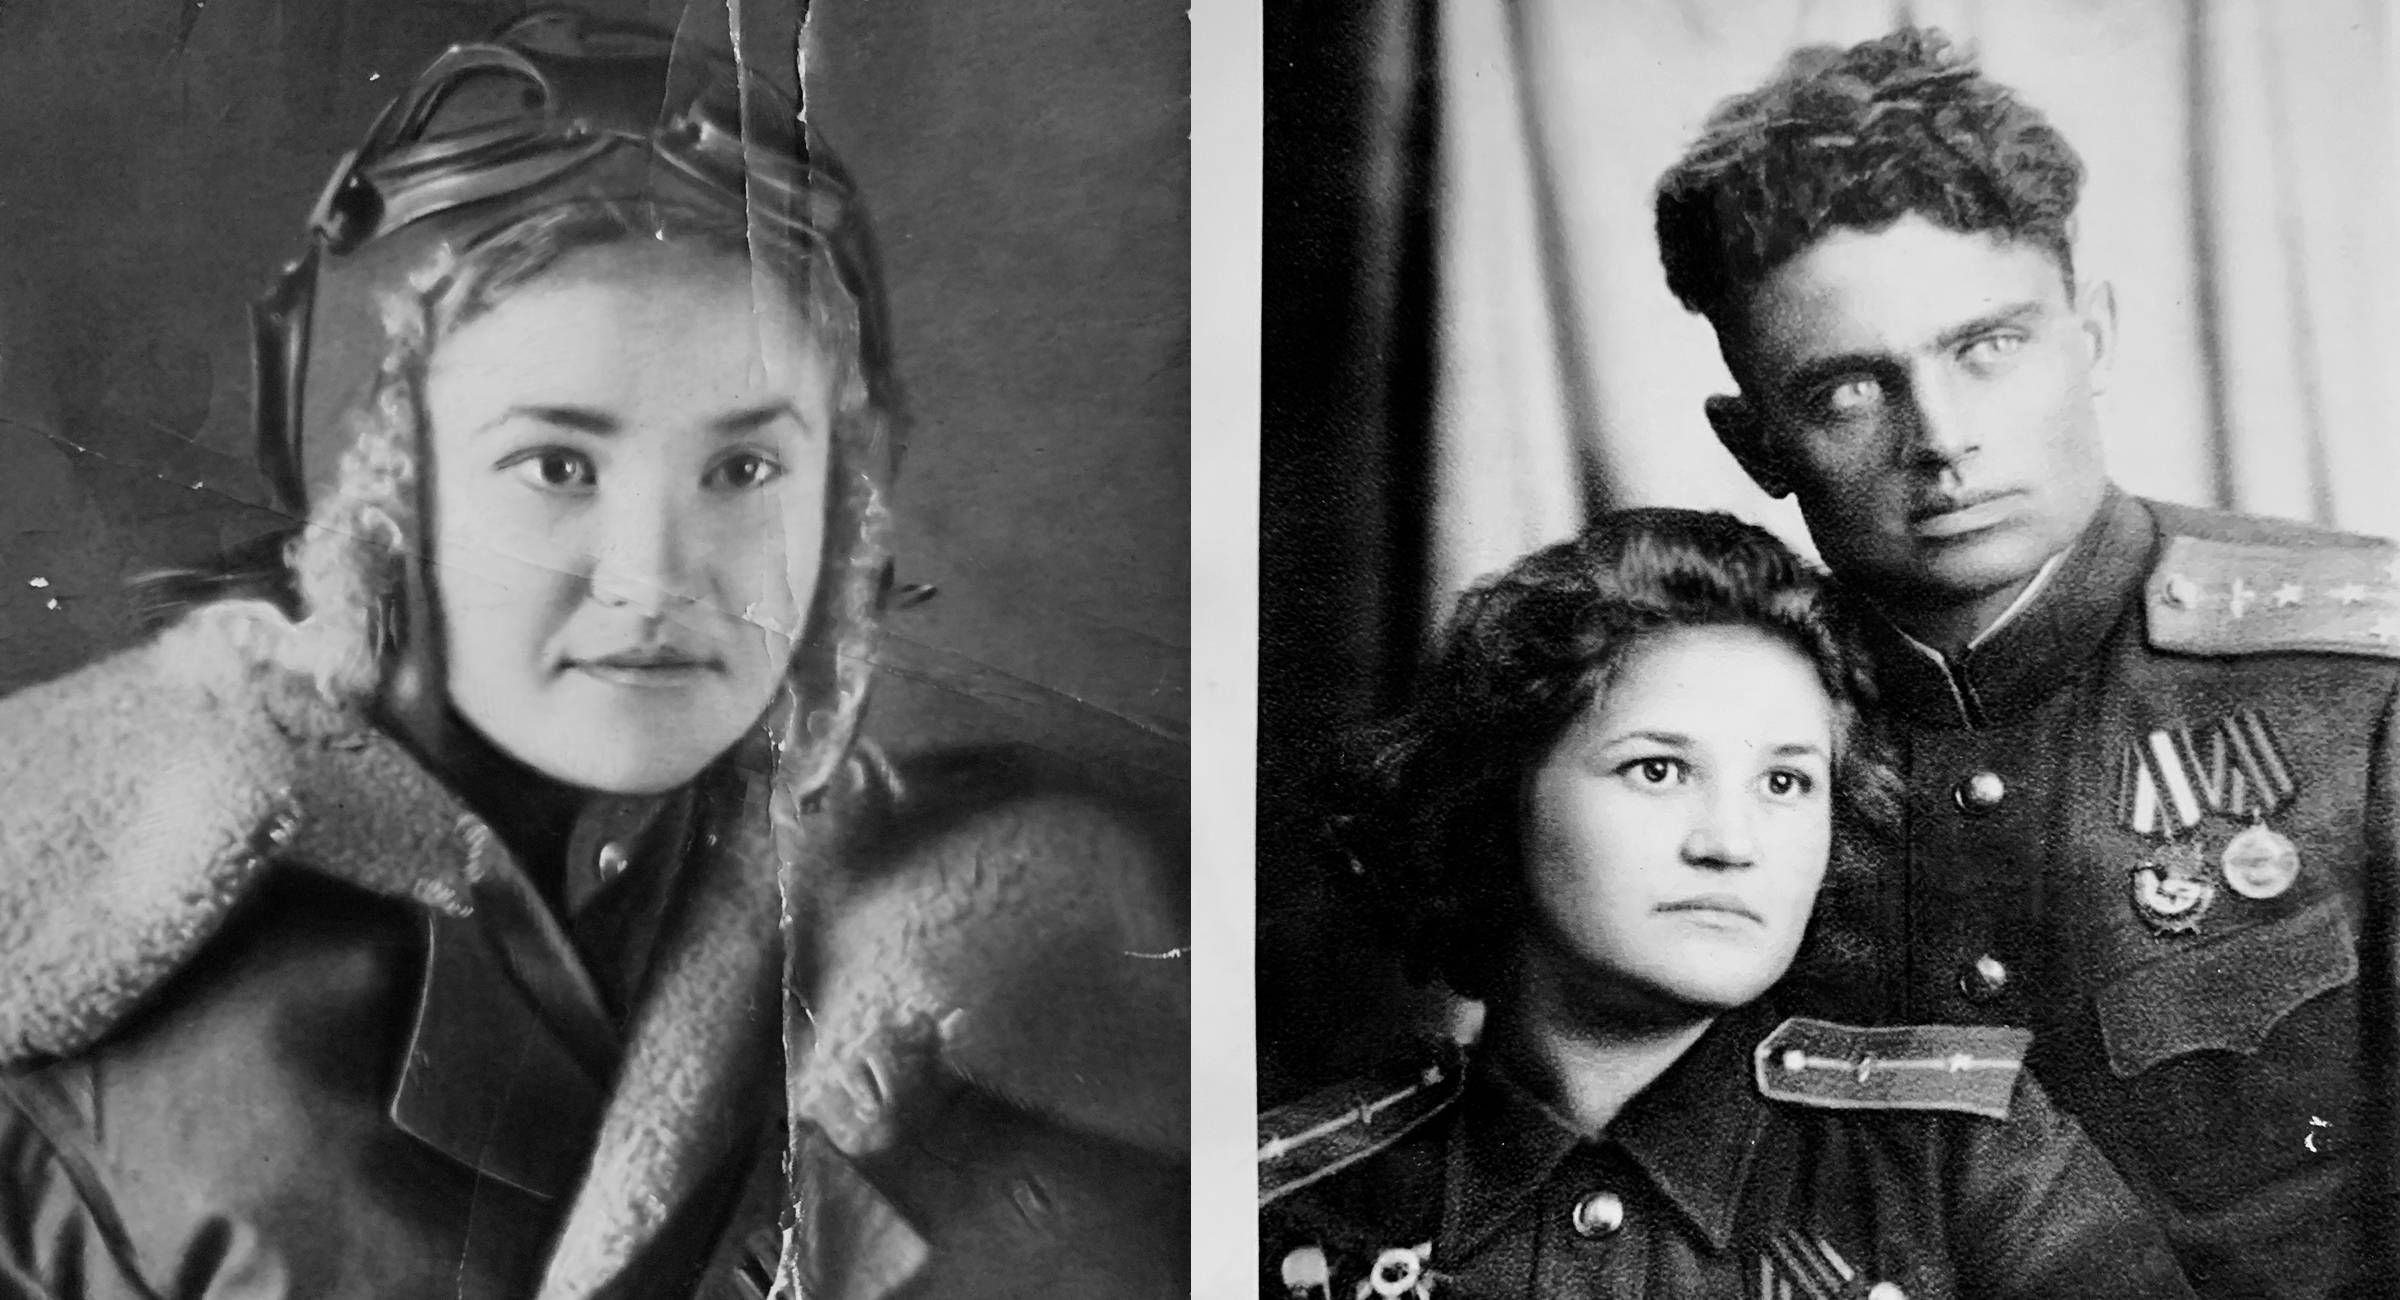 Left: Galina Brok-Beltsova in her days as a navigator in the Soviet women's 587th Bomber Aviation Regiment. (Courtesy of Galina Brok-Beltsova) Right: Brok-Beltsova with the officer she married, Georgy Beltsov. (Courtesy of Galina Brok-Beltsova)